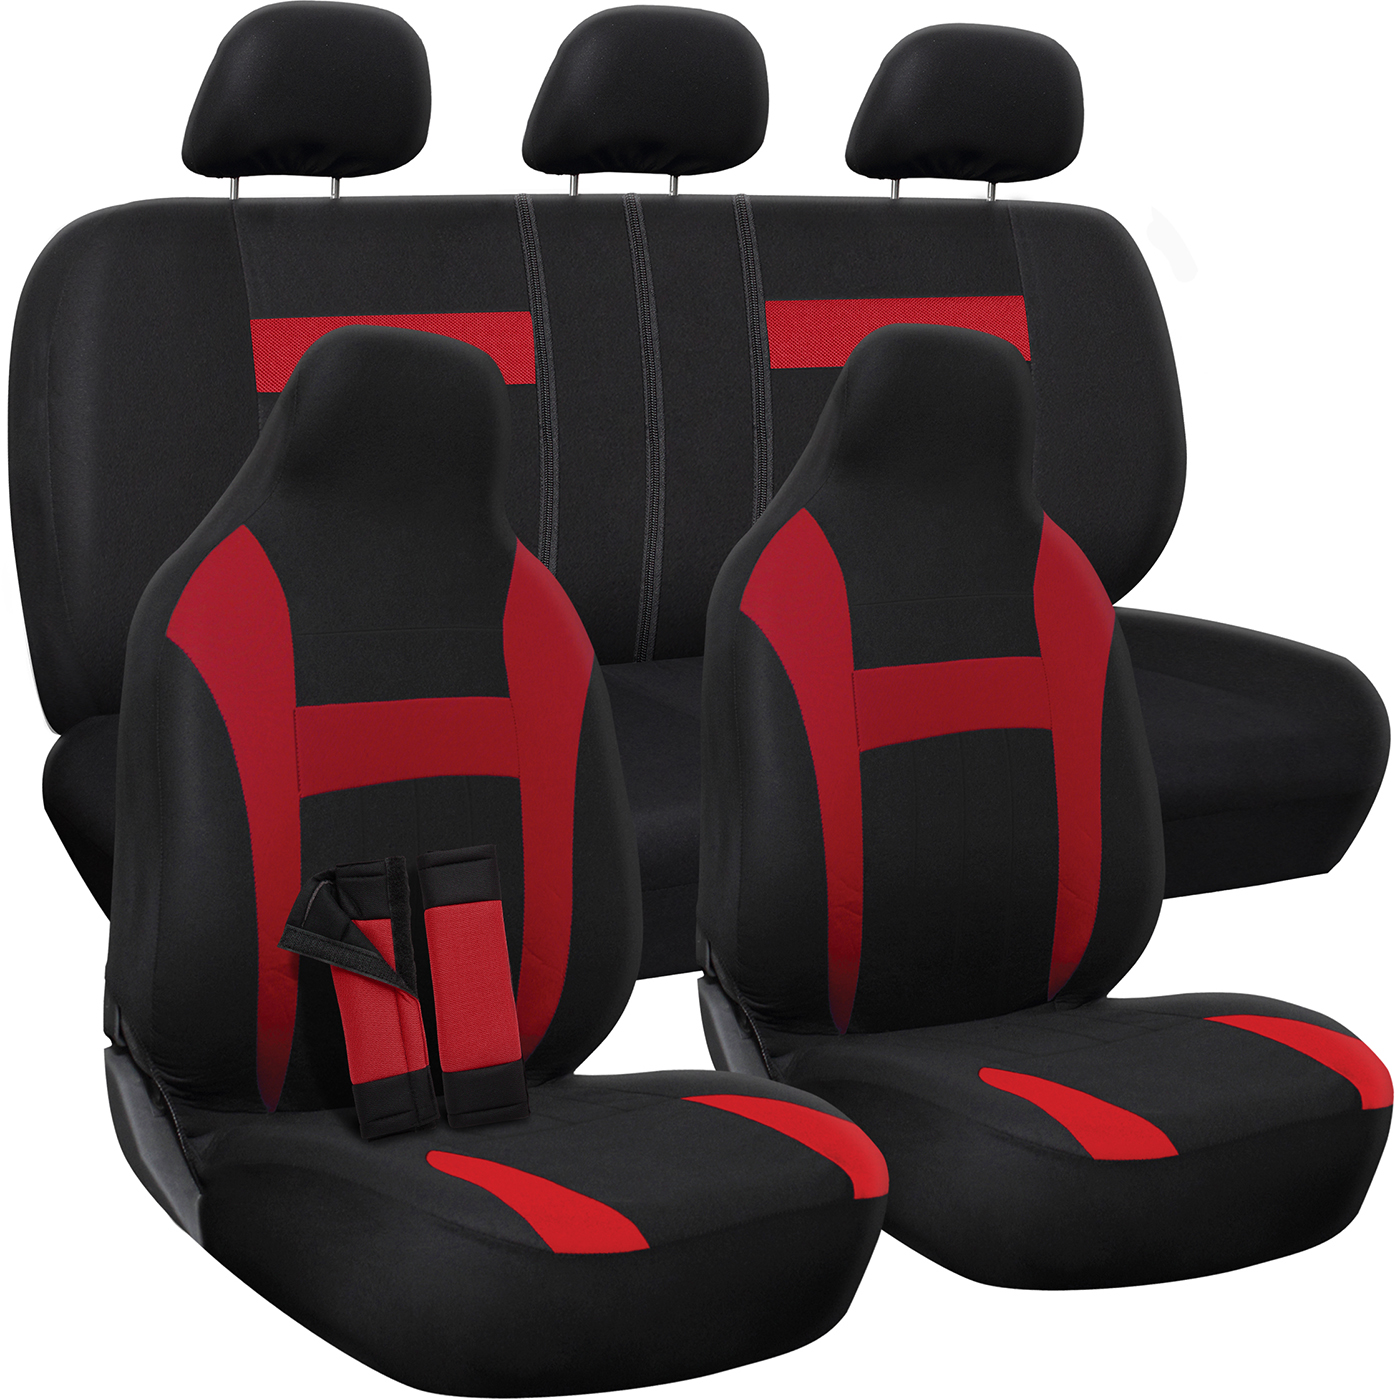 Car Seat Cover - Poly Cloth Two-Tone with Front Low Bucket and 50-50 or 60-40 Rear Split Bench - Universal Fit for Cars, Truck, SUV, Van - 10 pc Complete Set by OxGord